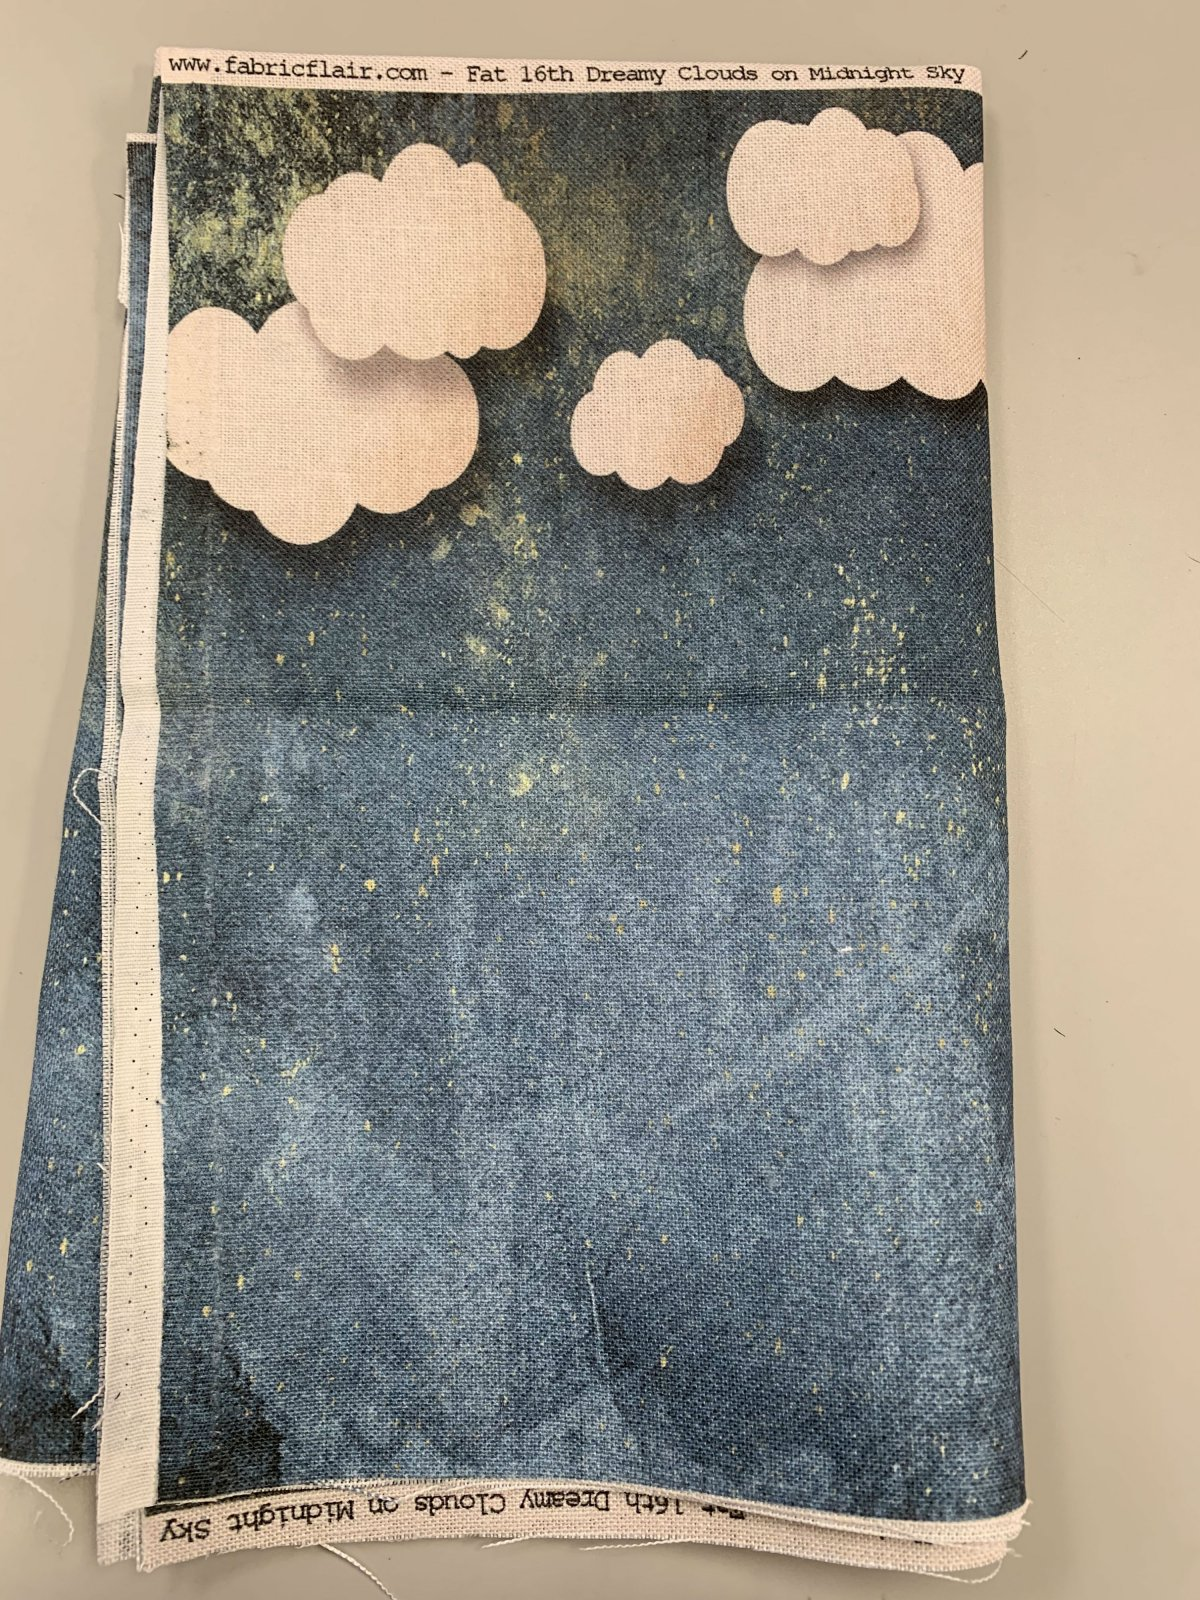 Fabric Flair Dreamy Clouds Midnight Sky 28ct 14 x 9 for Romy's Santa is Coming